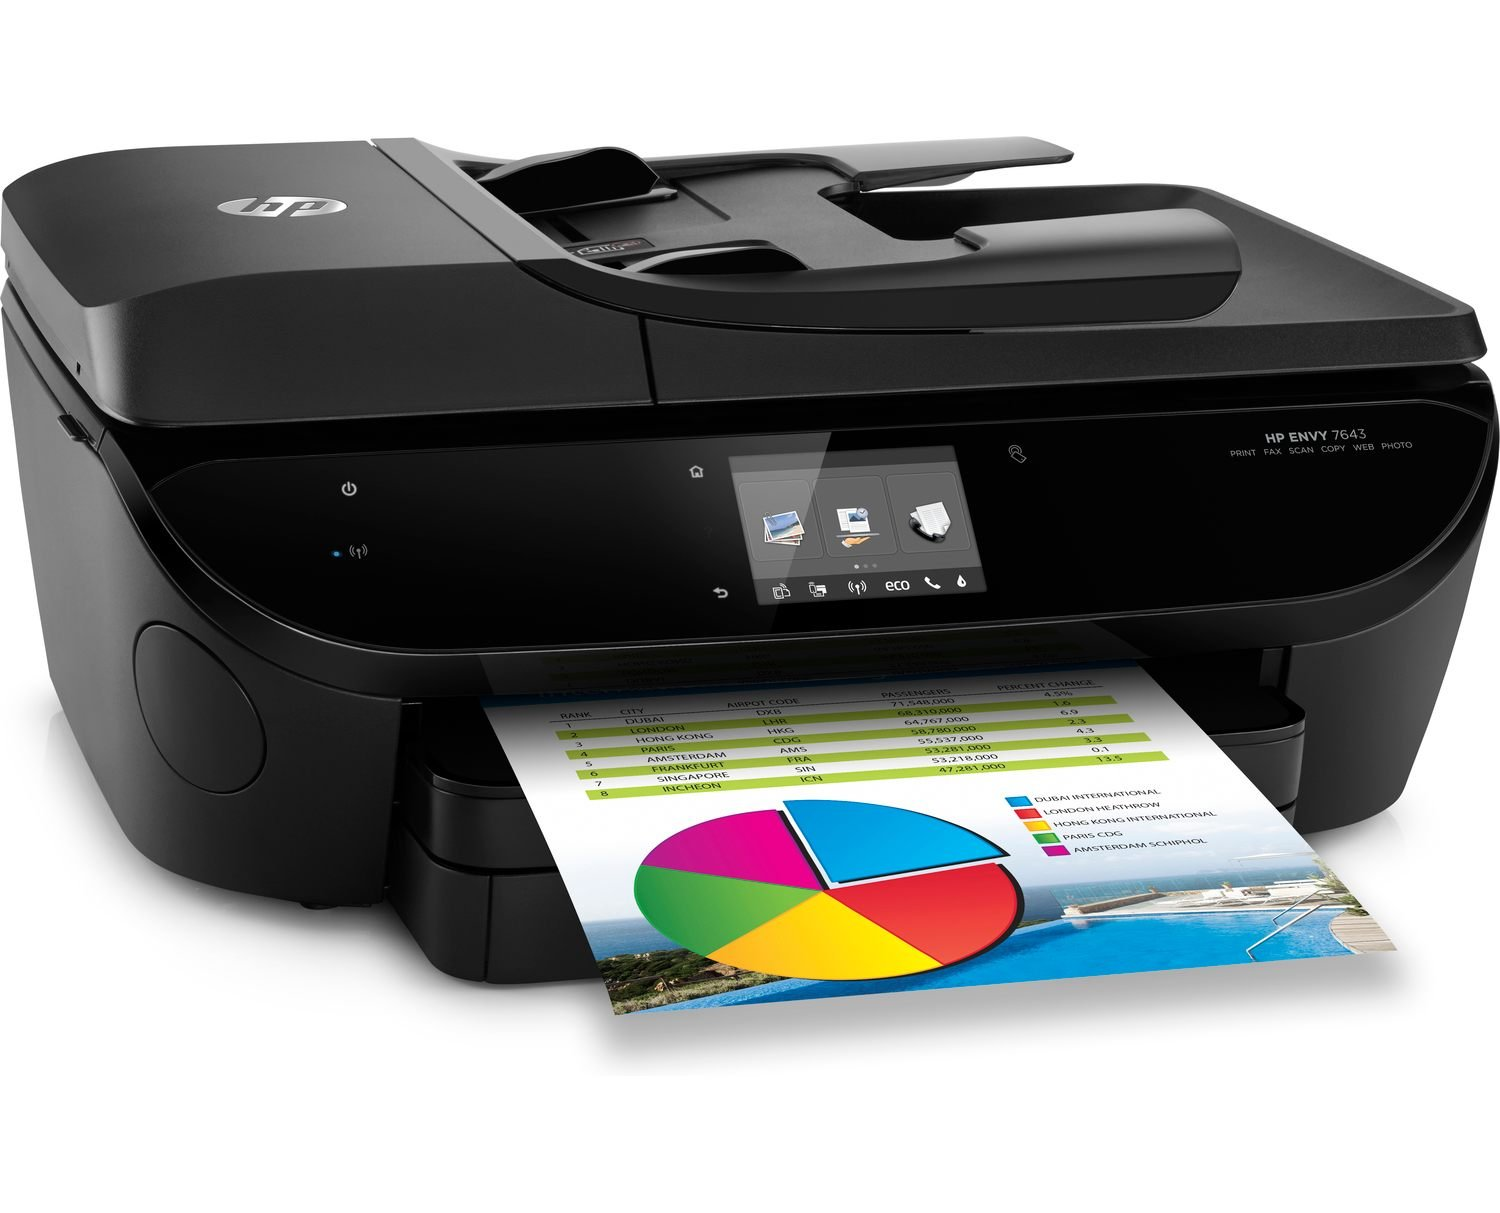 HP ENVY 7644 e-All-in-One Photo Quality Inkjet Printer, wireless printing, mobile phone compatible, in black (Renewed) by HP (Image #5)